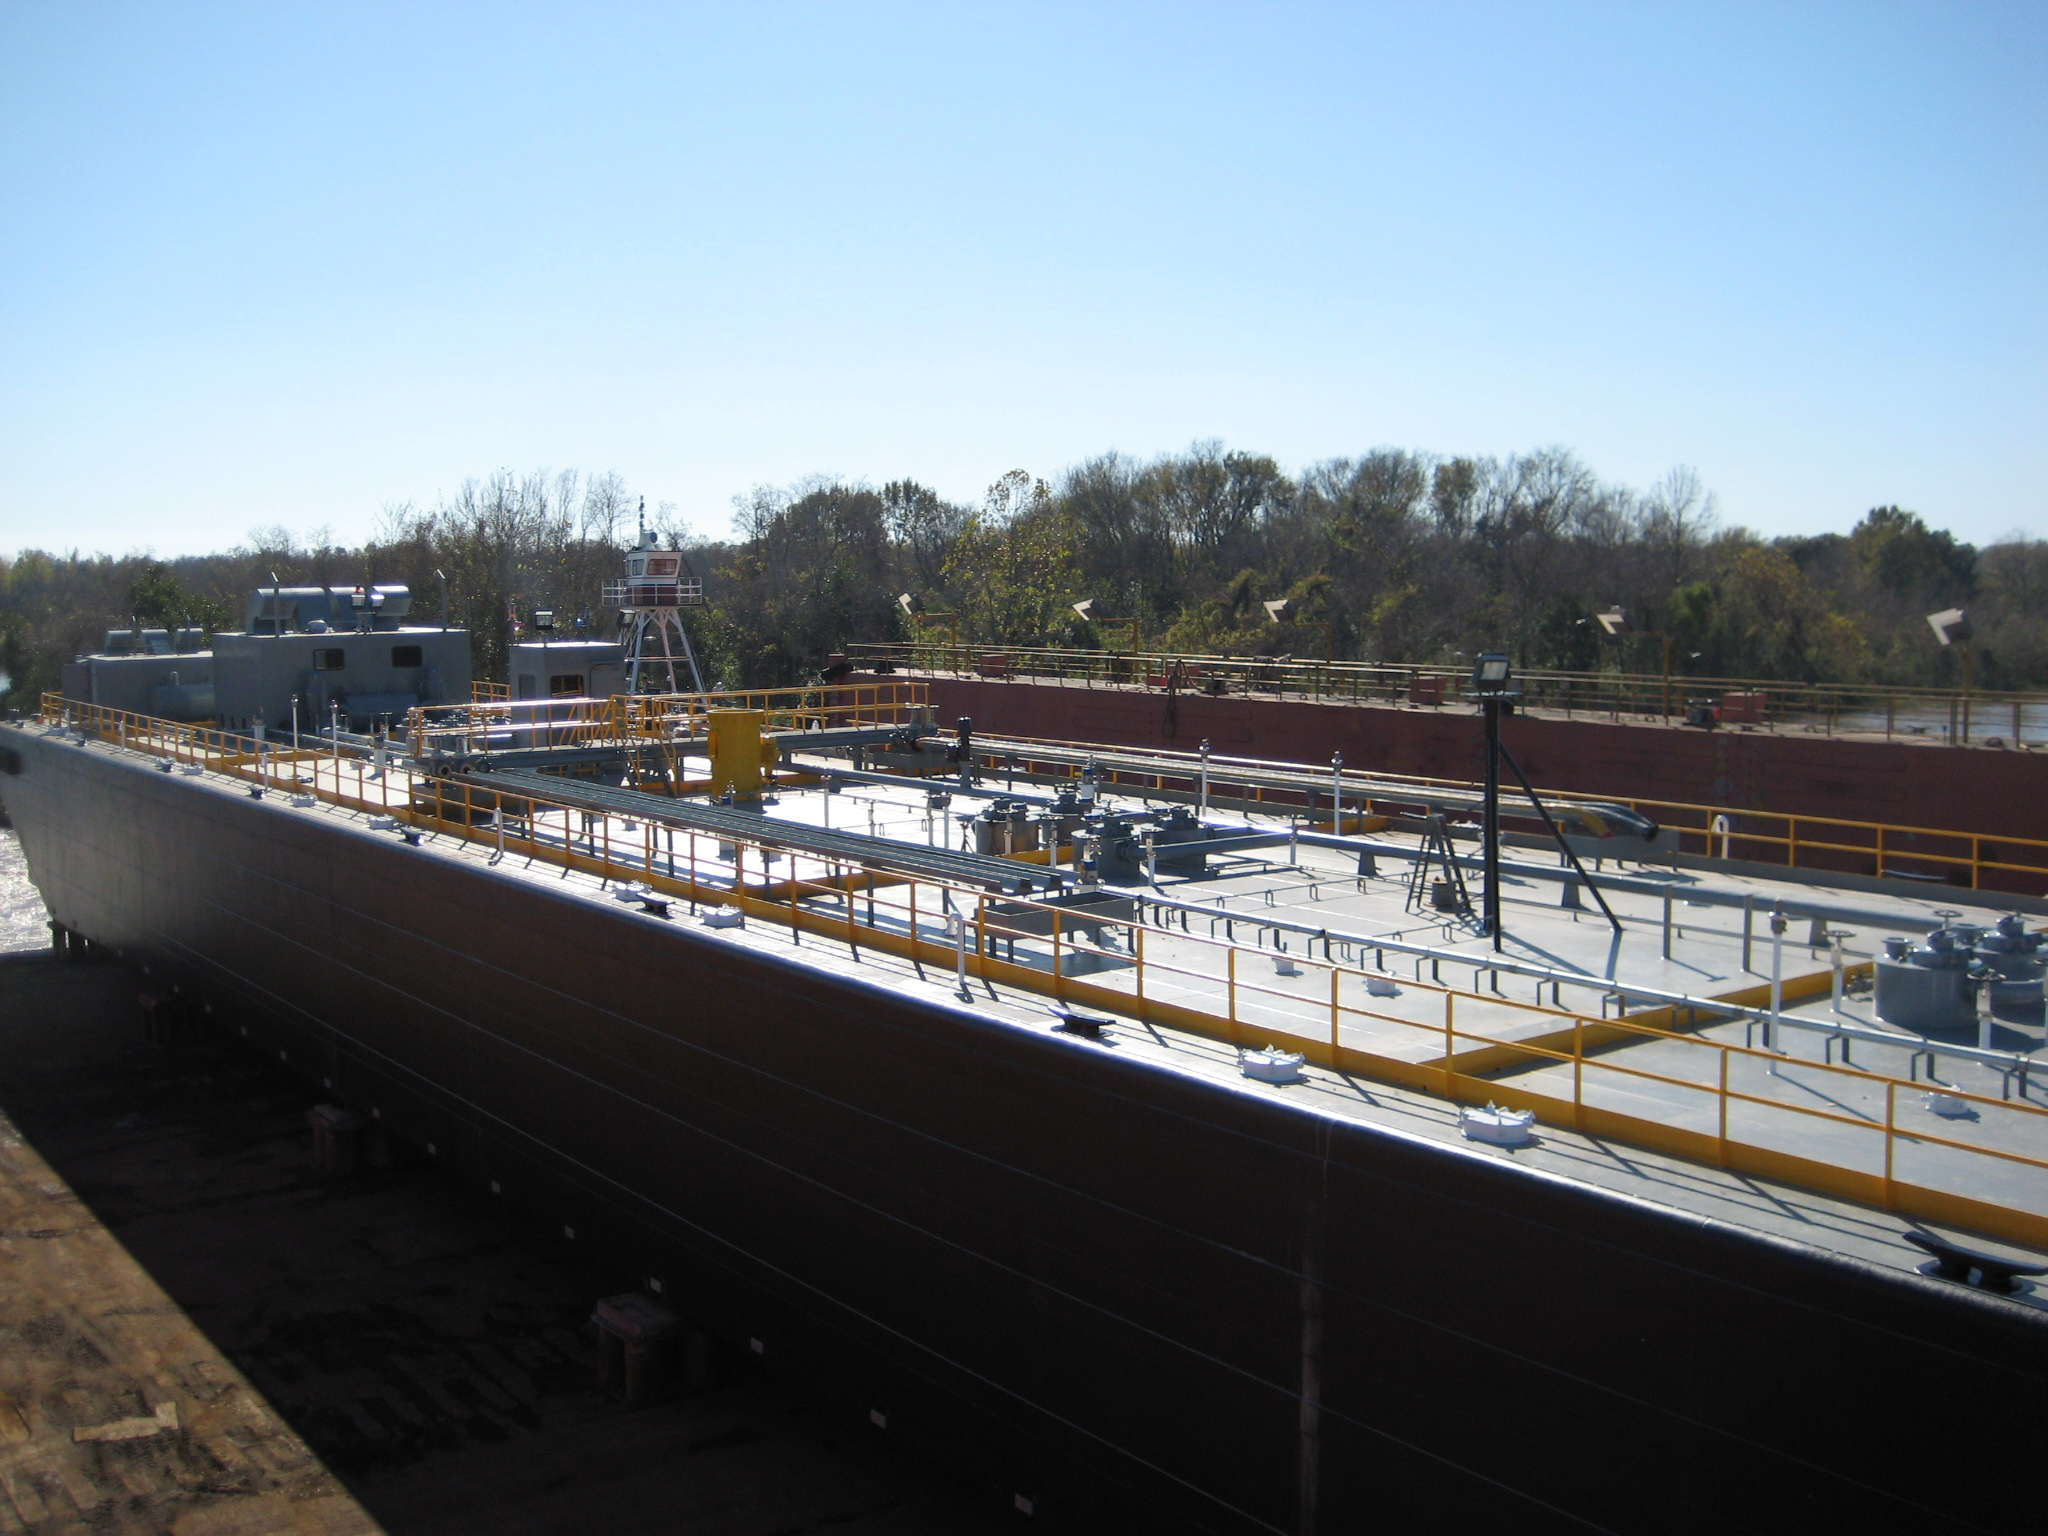 300' X 54' DOUBLE HULL TANK BARGE